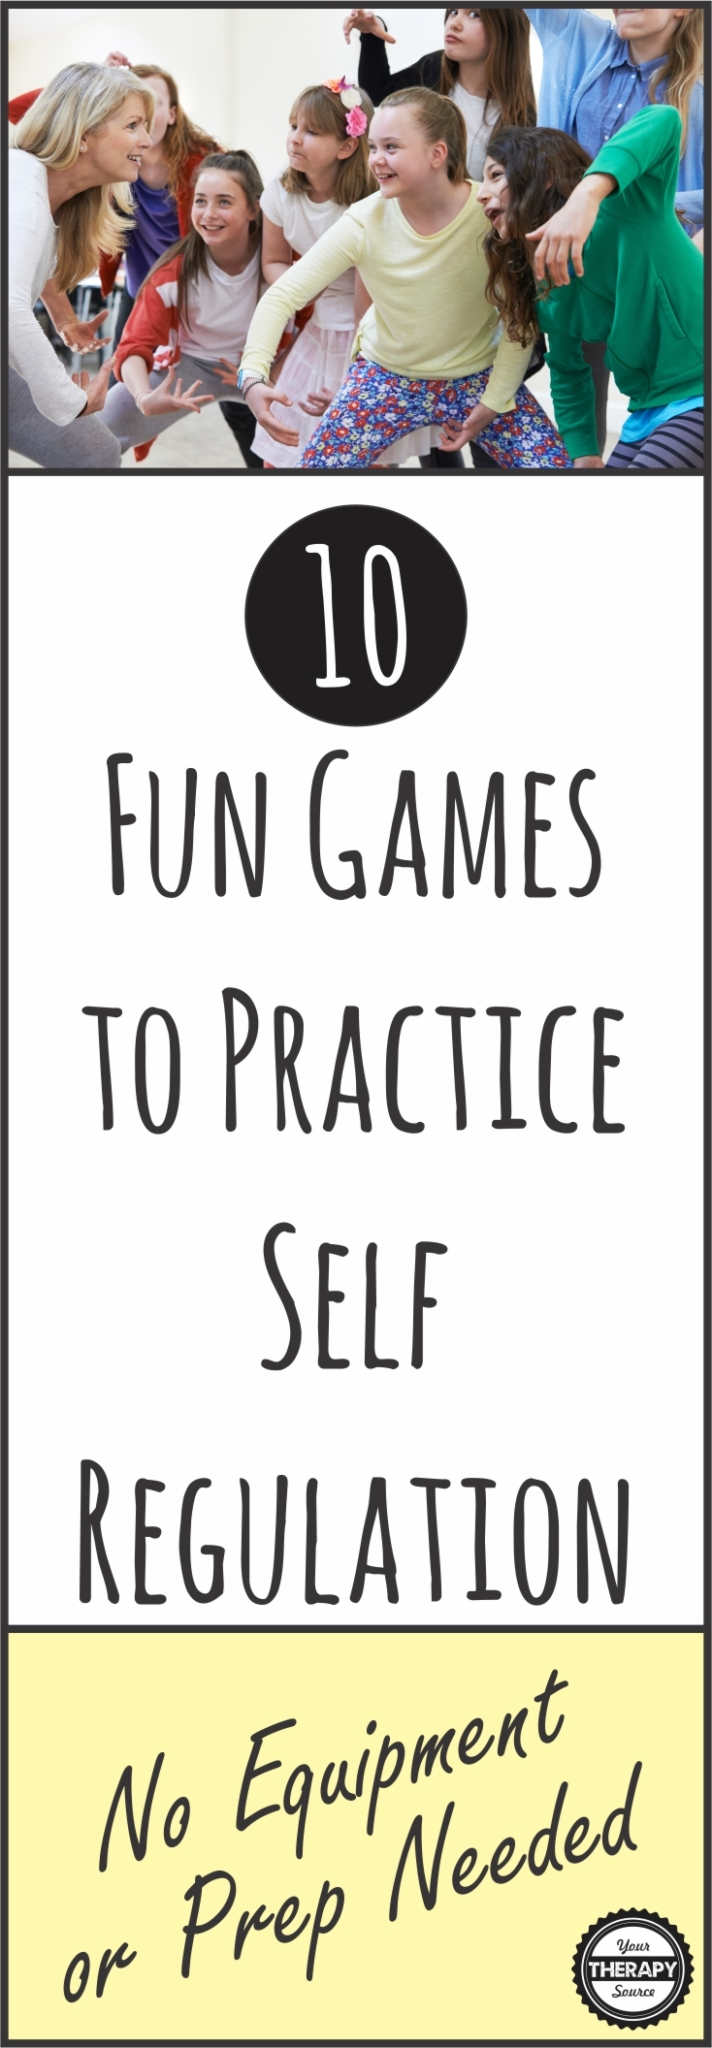 10 FUN self control games to practice self regulation skills in children - the games require no equipment or preparation. They make great brain breaks too!